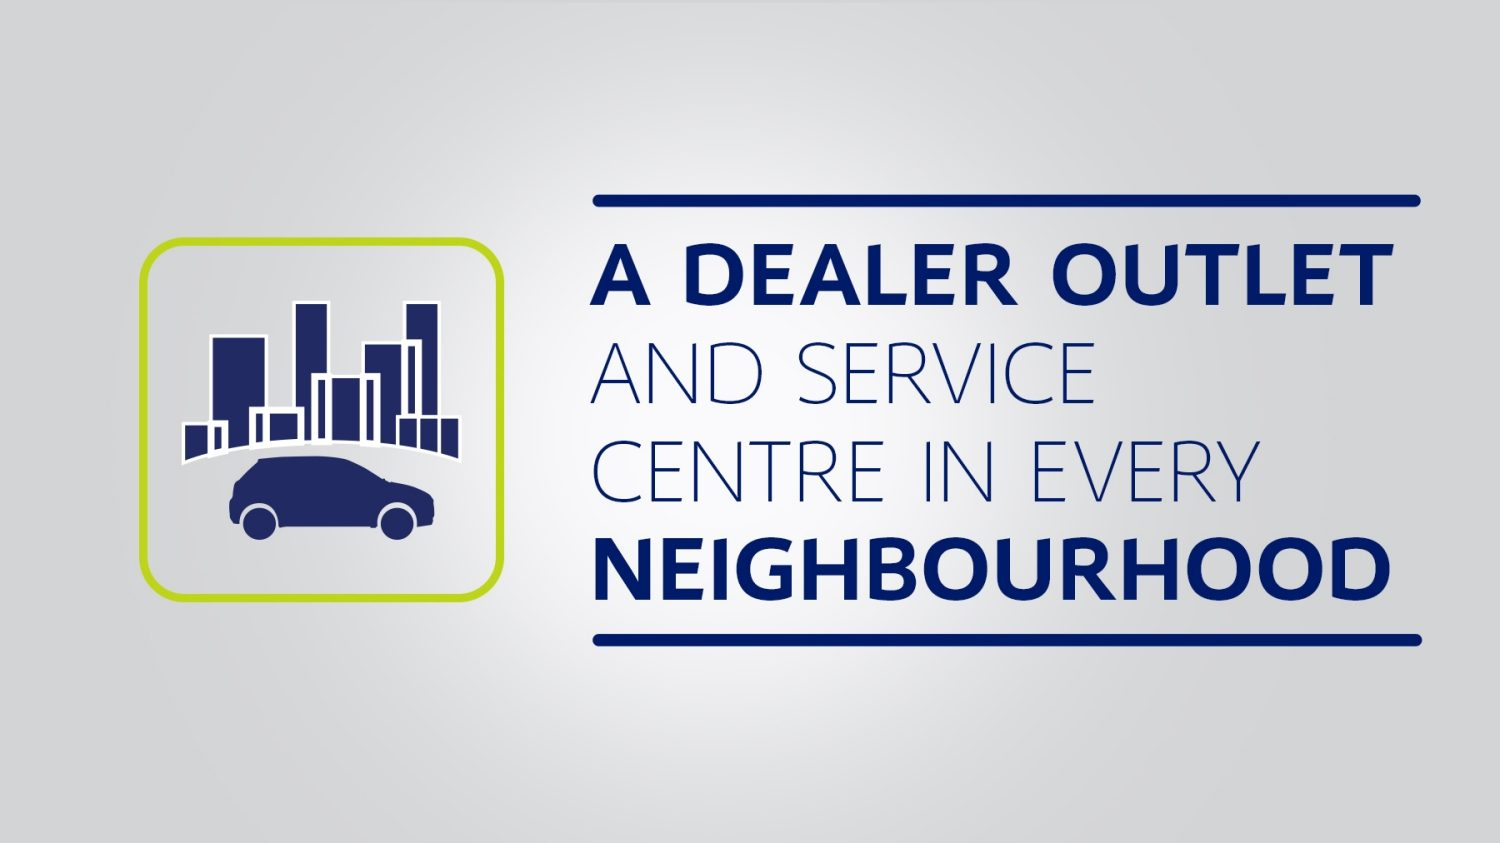 A Dealer Outlet and Service Centre in Every Neighbourhood